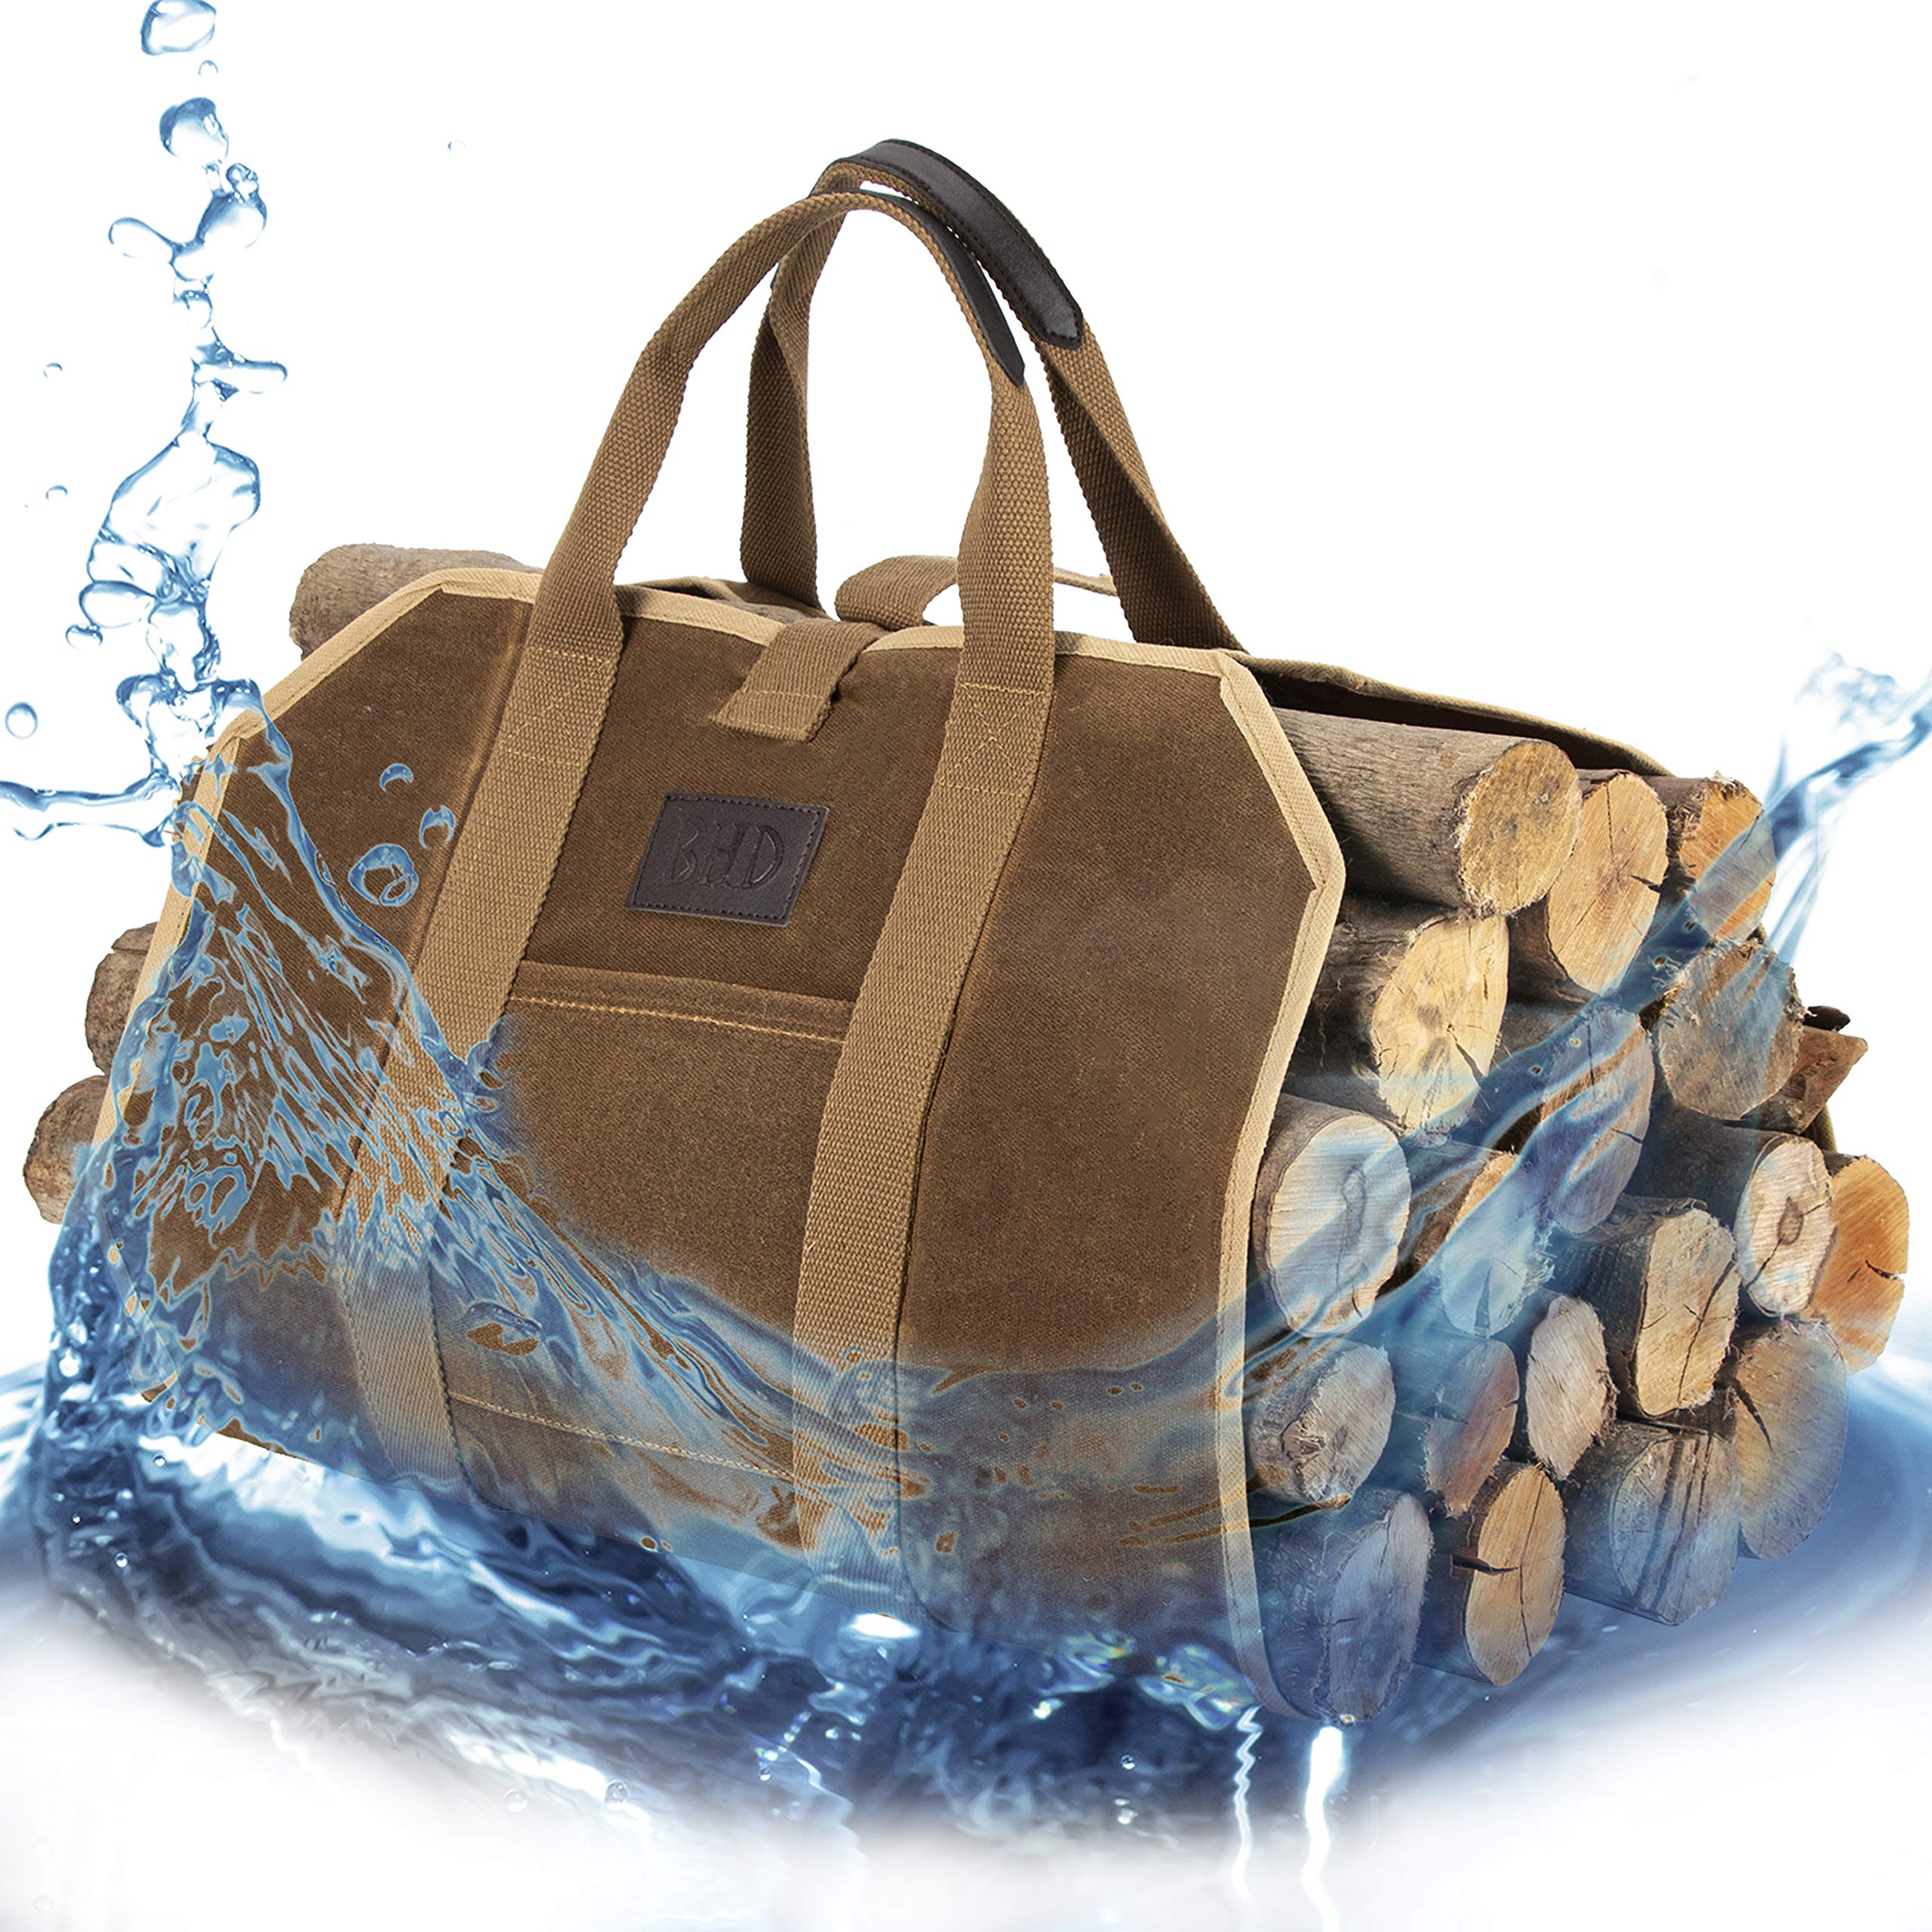 BHD Firewood Fireplace Carrier Logs Tote Holder 20 oz Waxed Canvas Sturdy Bag with Handles for Camping Indoor Outdoor by BHD BEAUTY